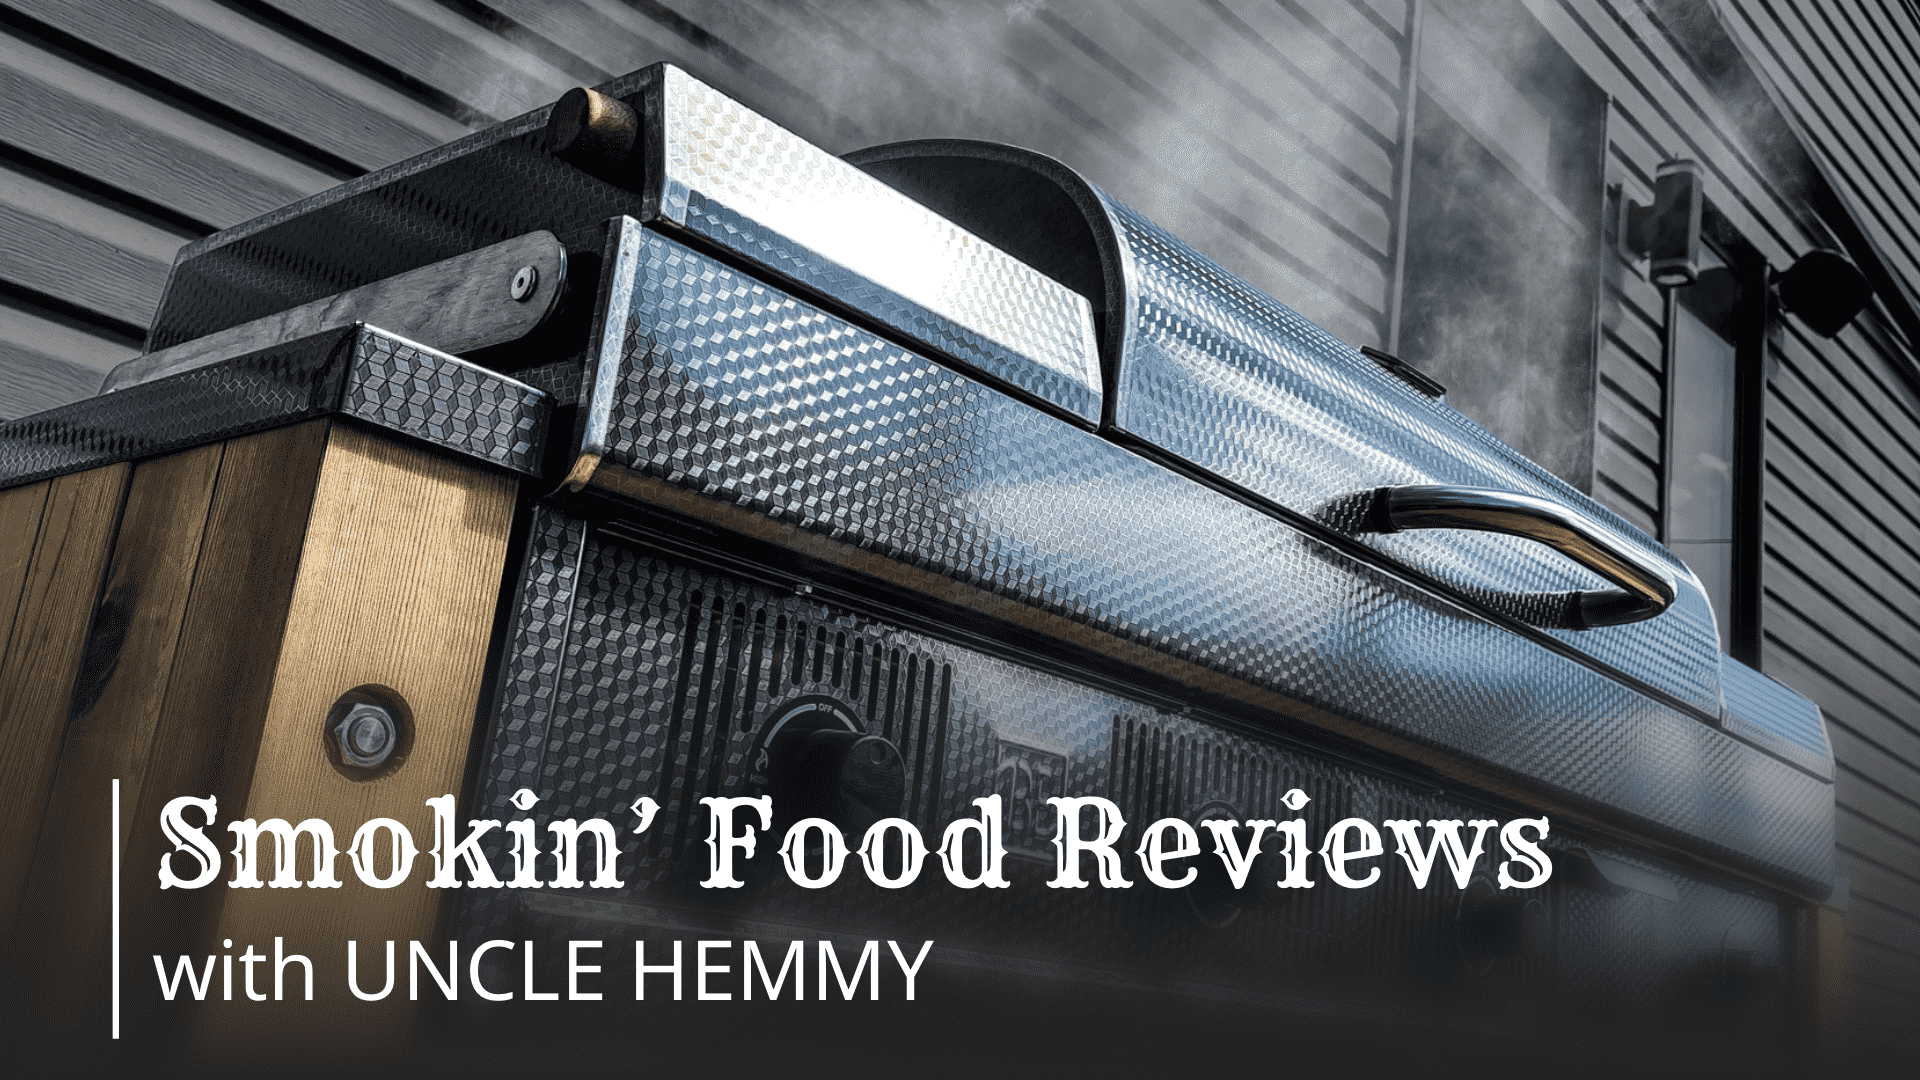 Smoked brisket, Uncle Hemmy style!! Smokin' Food Reviews with Uncle Hemmy